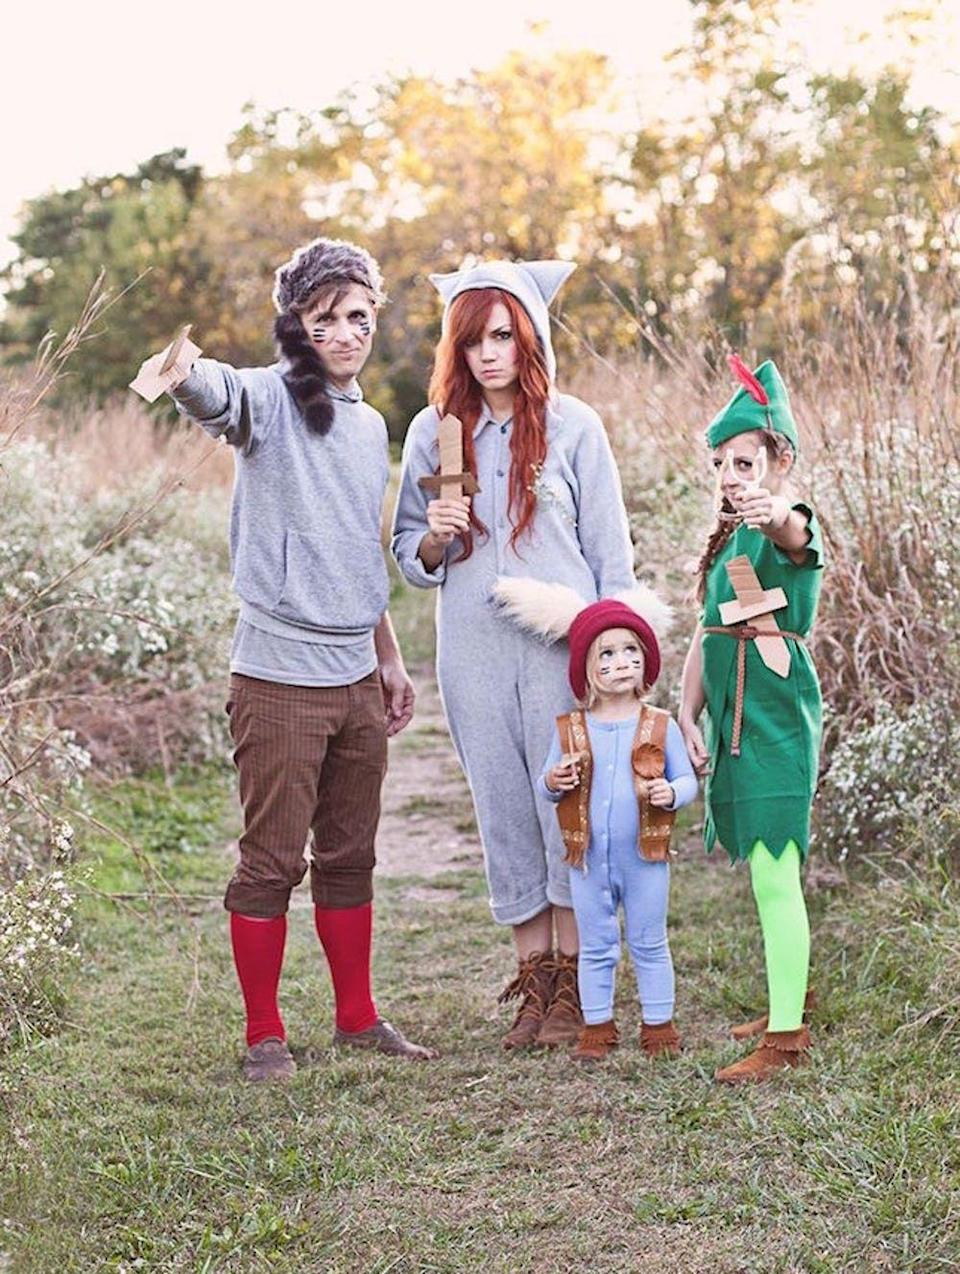 """<p>There's no need to grow up if you're donning this cute outfit! You'll be surprised at just how easy it is to craft your own <em>Peter Pan</em> costume—hat and all. </p><p><strong>Get the tutorial at <a href=""""https://abeautifulmess.com/2013/10/peter-pan-and-the-lost-boys-costume-diy.html"""" rel=""""nofollow noopener"""" target=""""_blank"""" data-ylk=""""slk:A Beautiful Mess"""" class=""""link rapid-noclick-resp"""">A Beautiful Mess</a>. </strong></p><p><a class=""""link rapid-noclick-resp"""" href=""""https://www.amazon.com/Hunter-Green-Oversized-Sheet-Blend/dp/B072FFFM76?tag=syn-yahoo-20&ascsubtag=%5Bartid%7C10050.g.29074815%5Bsrc%7Cyahoo-us"""" rel=""""nofollow noopener"""" target=""""_blank"""" data-ylk=""""slk:SHOP GREEN FELT"""">SHOP GREEN FELT</a></p>"""